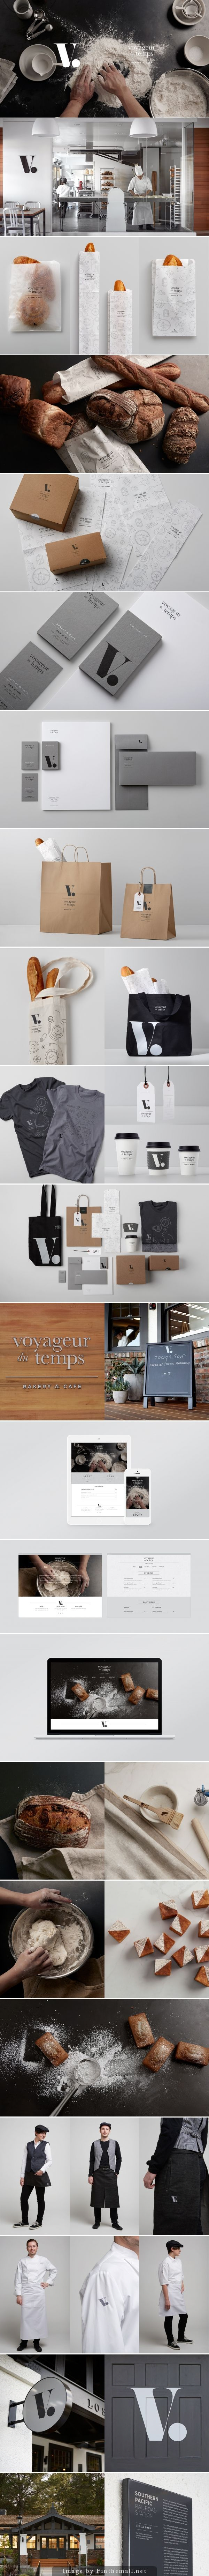 Voyageur-du-temps # want some bread now #identity #packaging #branding PD